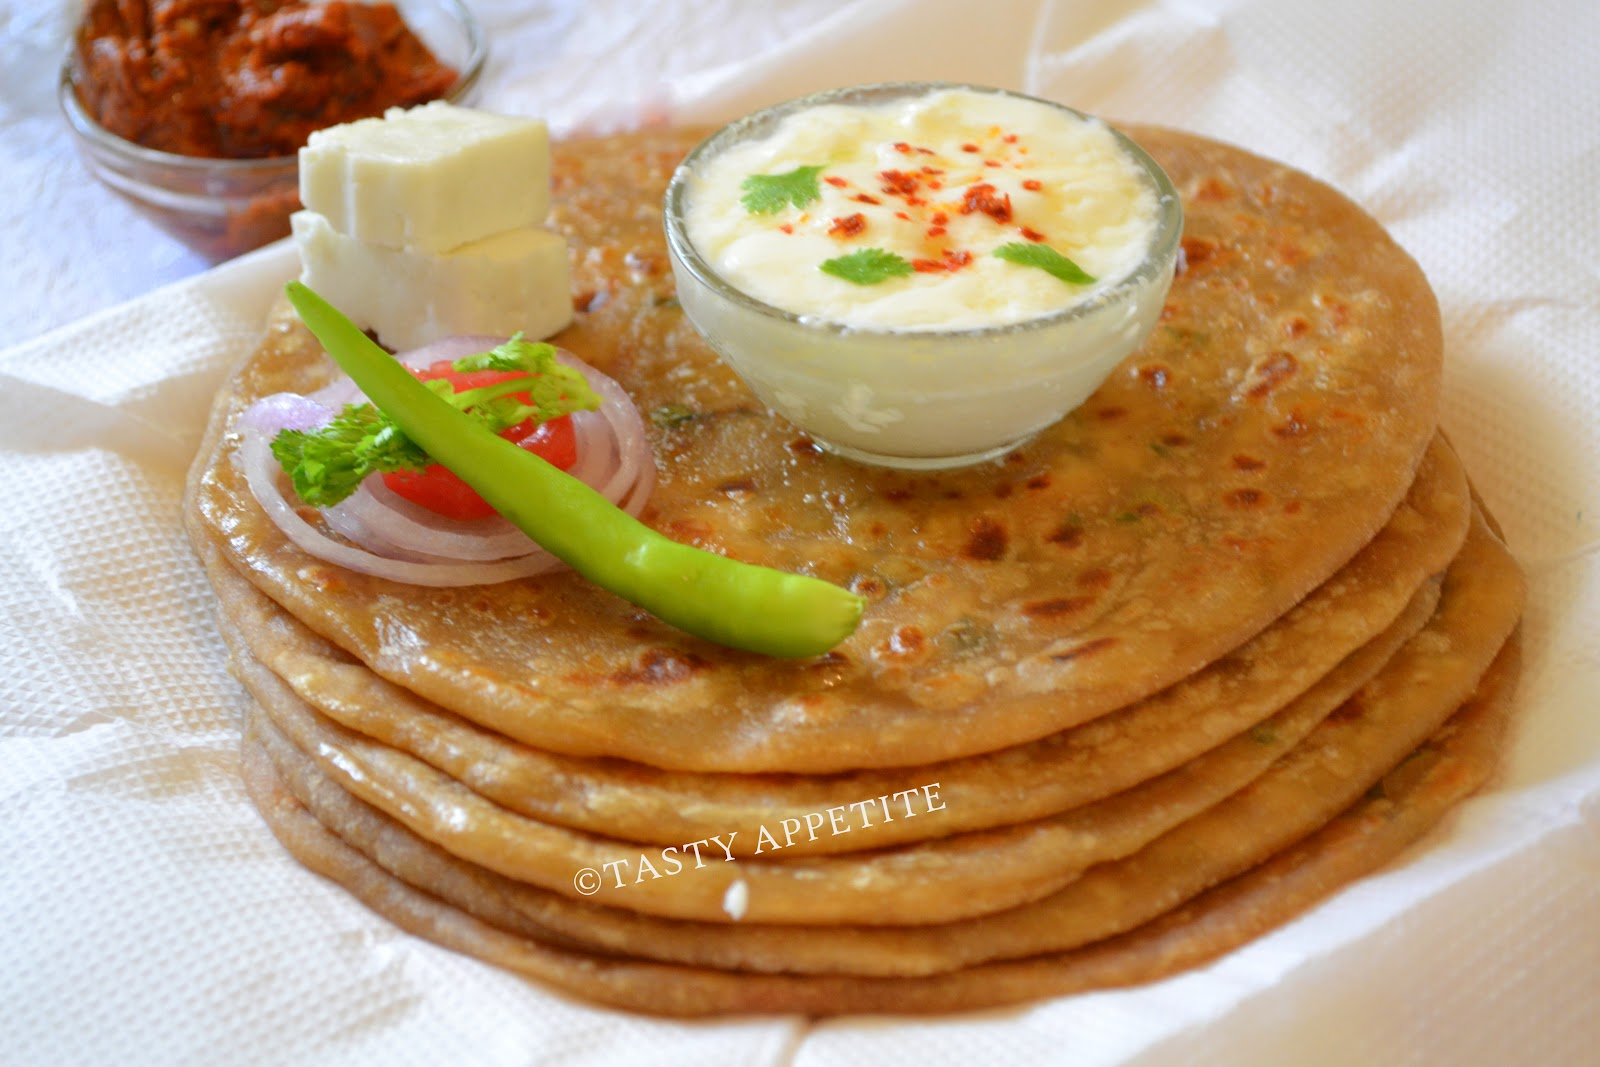 18. Healthy & tasty mouthwatering parathas are ready to relish.